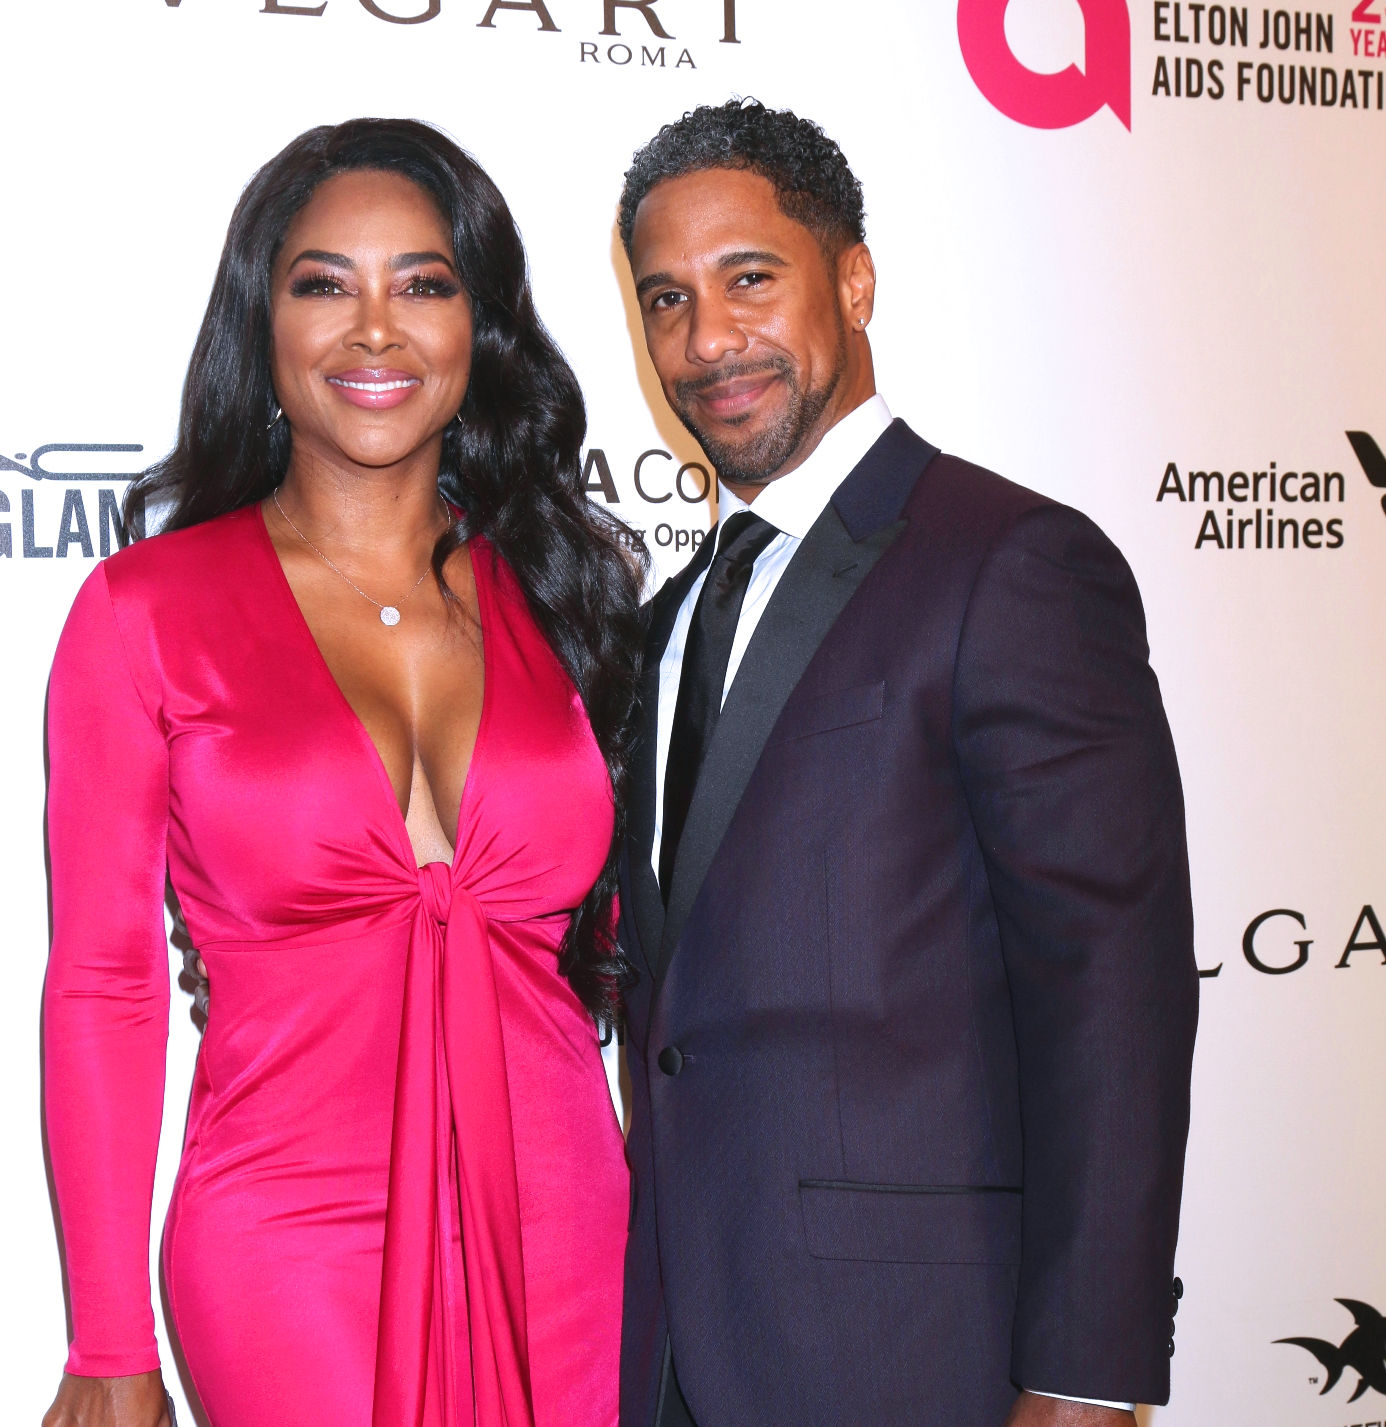 Rhoa Star Kenya Moore S Husband Marc Daly Apologizes As Kenya Removes Daly From Her Instagram Profile Reality Blurb